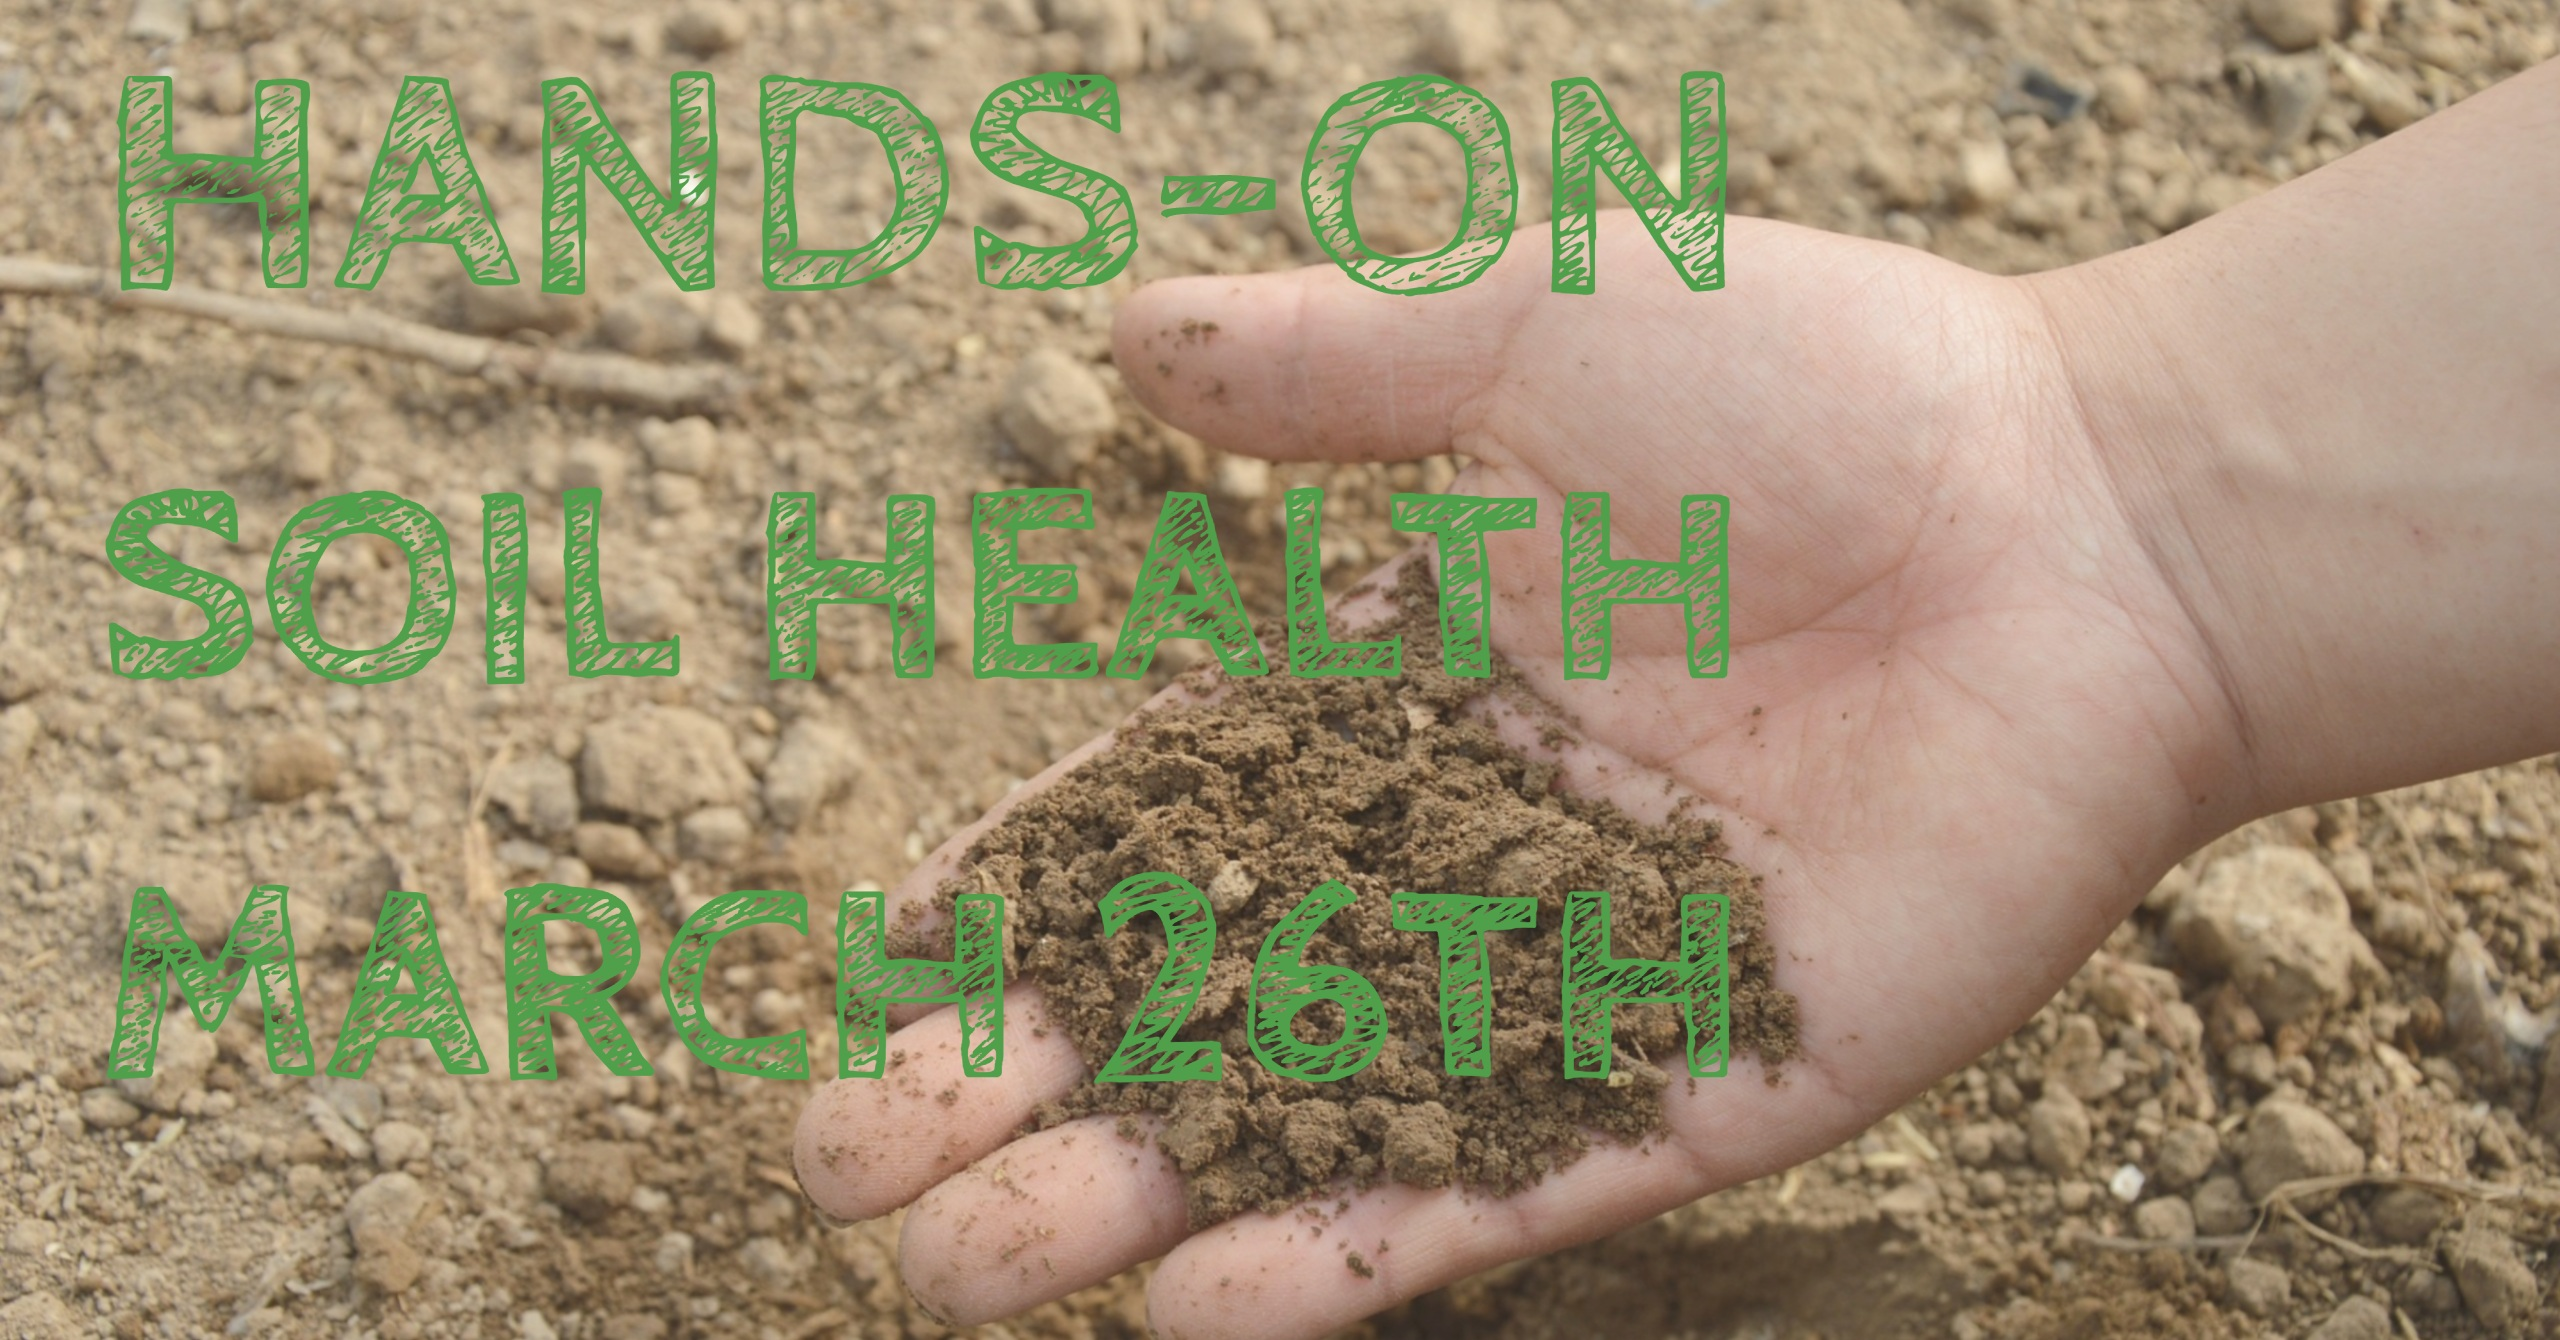 3/26 Hands-on Soil Health